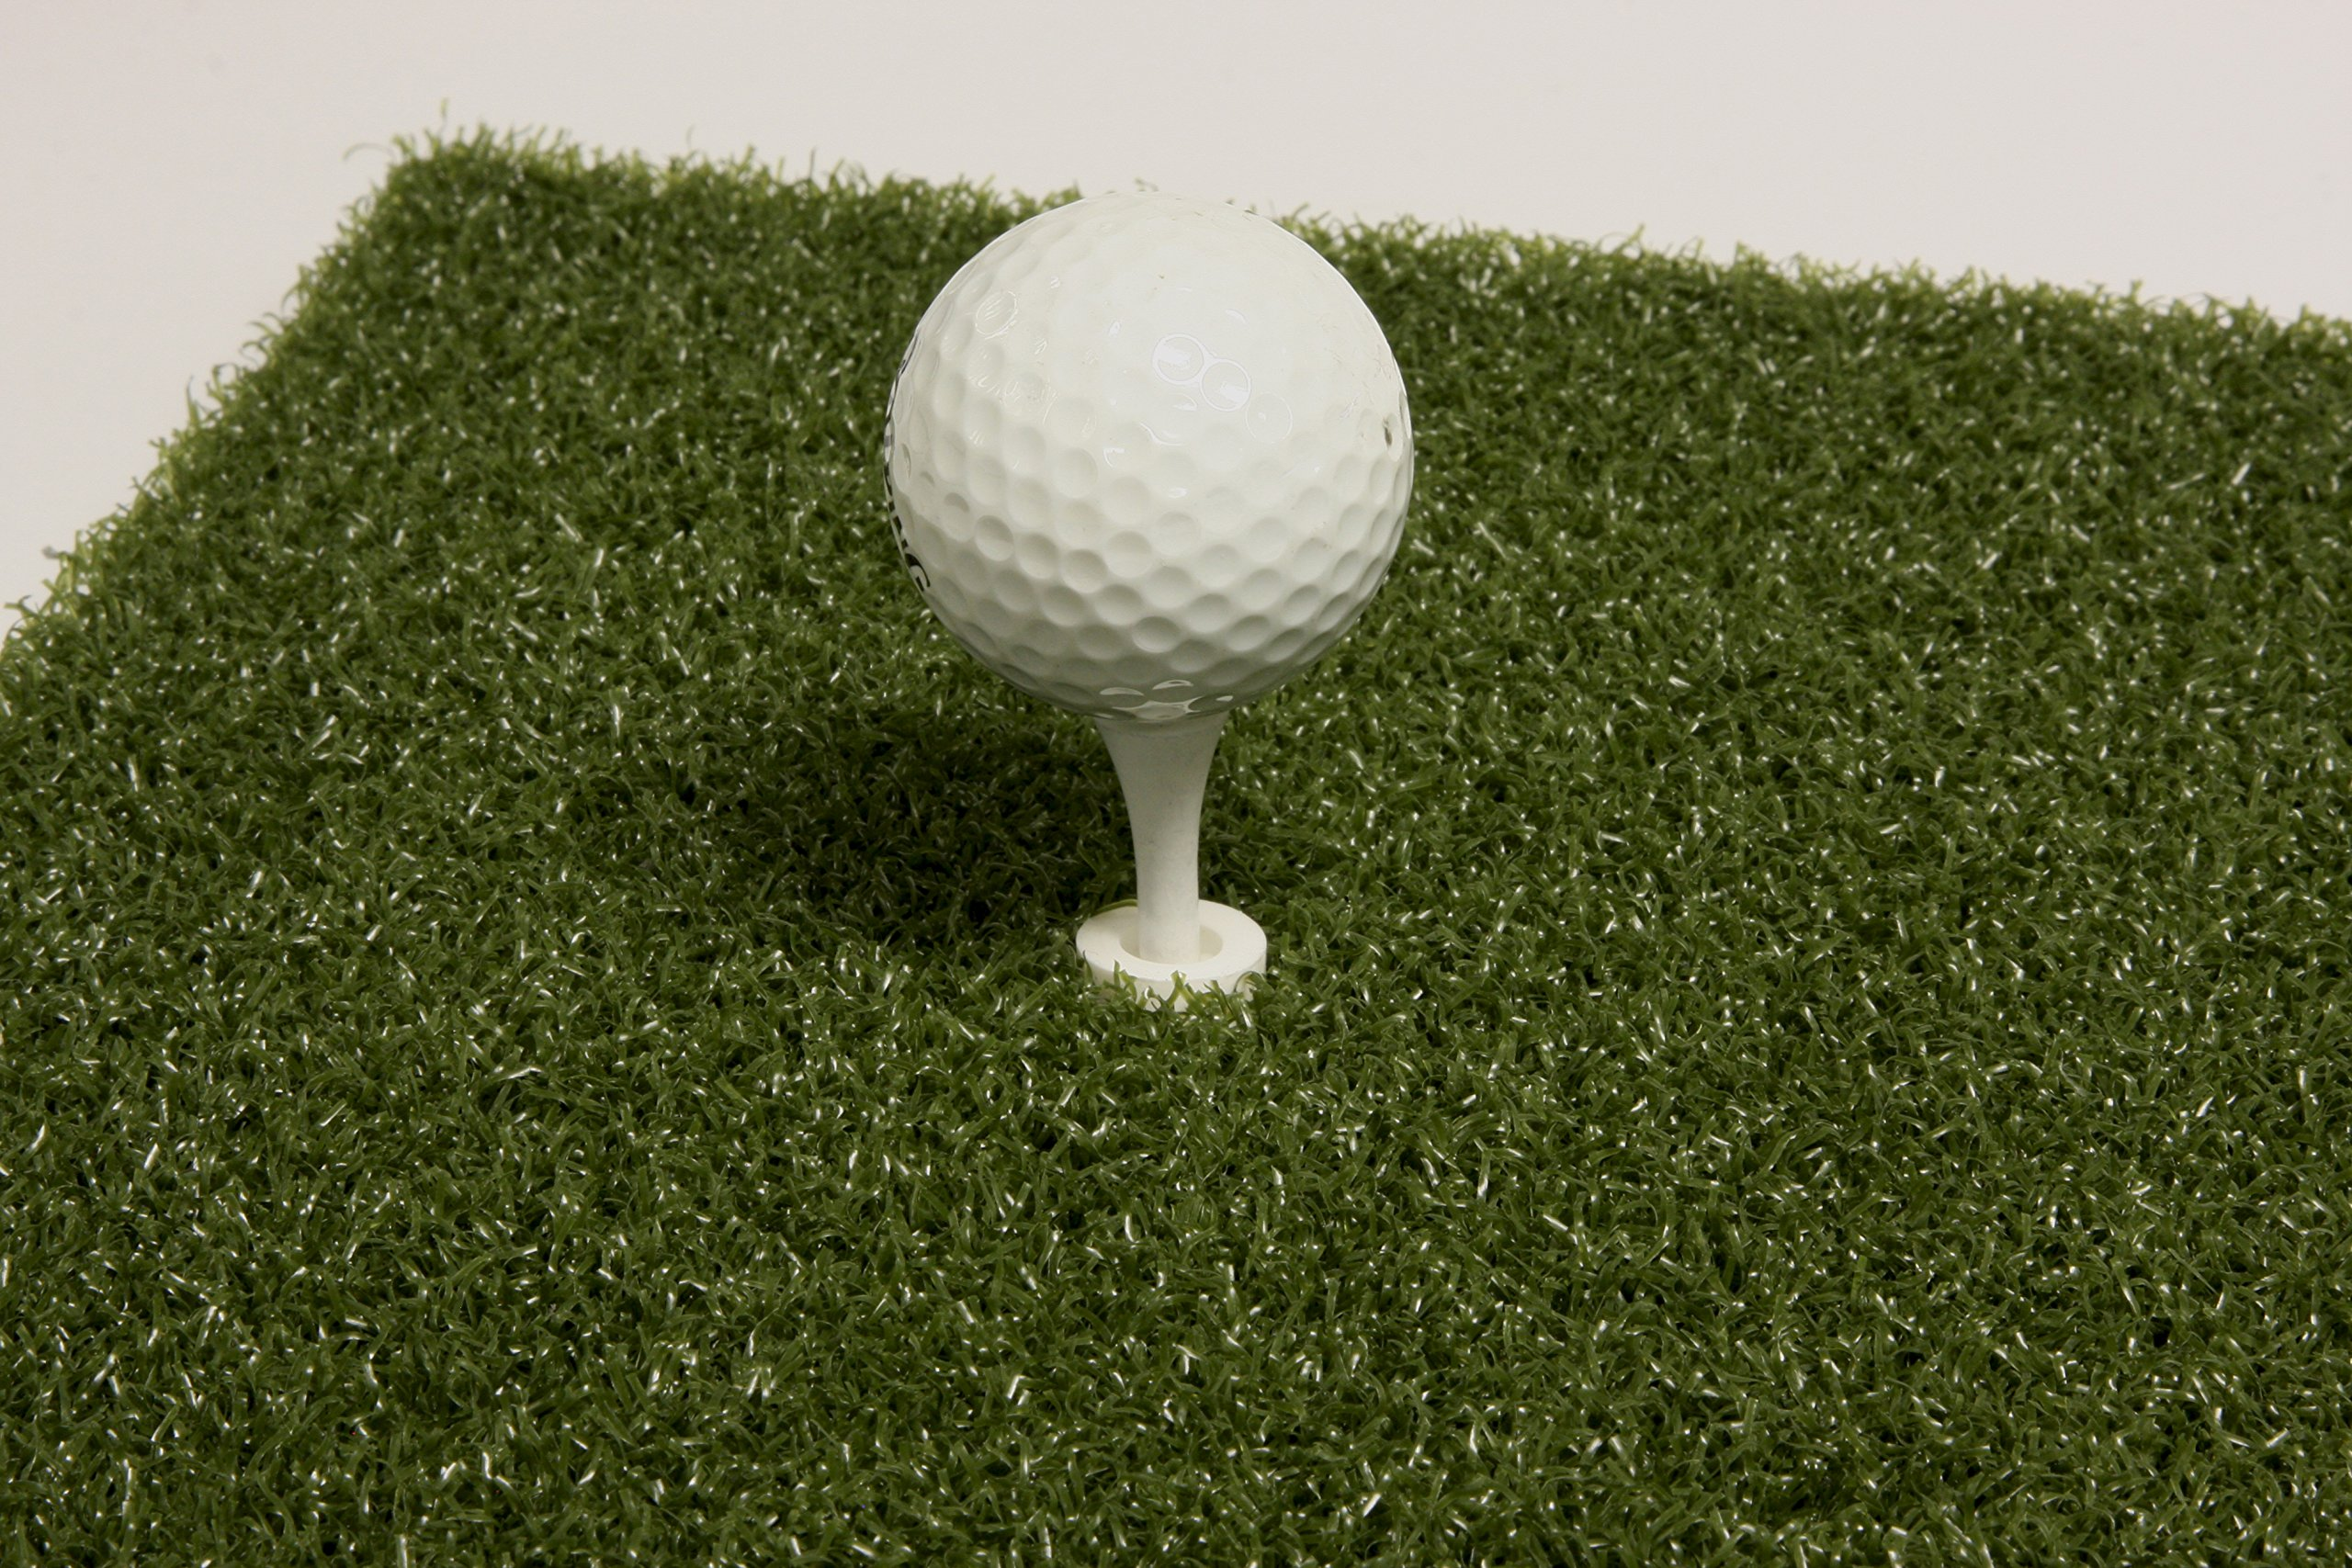 Putt-A-Bout Chipping and Drive Mat, 1 x 2-Feet by Putt-A-Bout (Image #3)